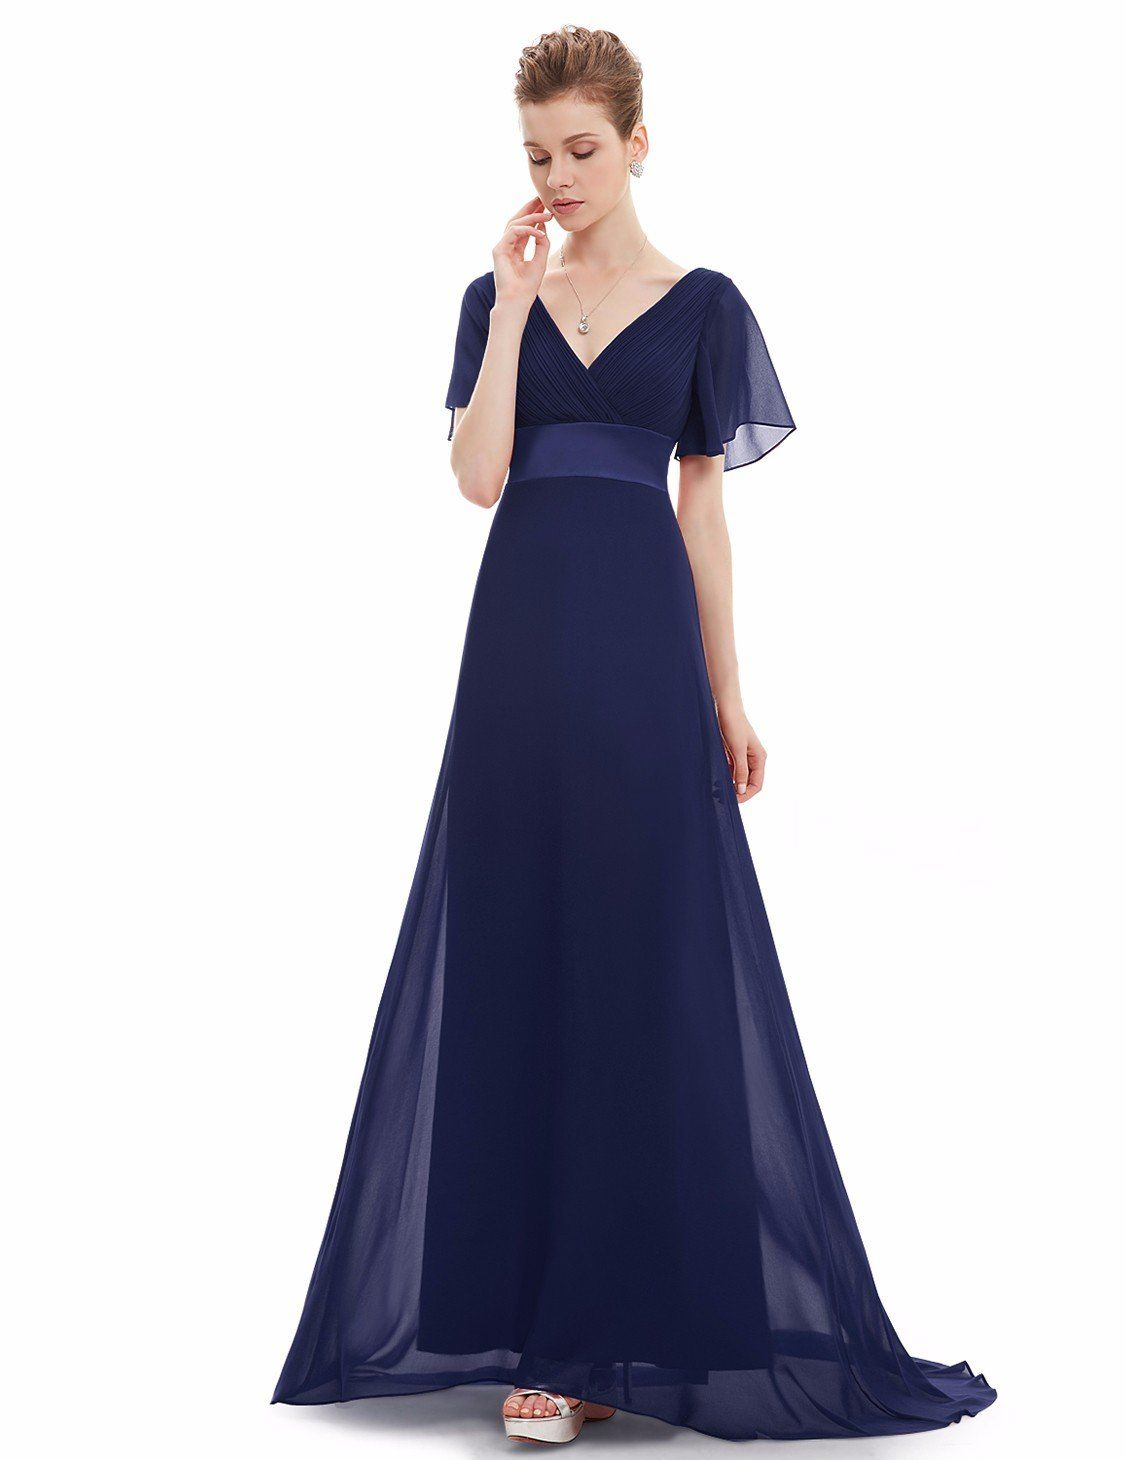 86a0e07571c EverPretty Womens Flutter Sleeve Chiffon Long Bridesmaids Dress 16 US Navy  Blue   Find out more at the image web link. (This is an affiliate link).